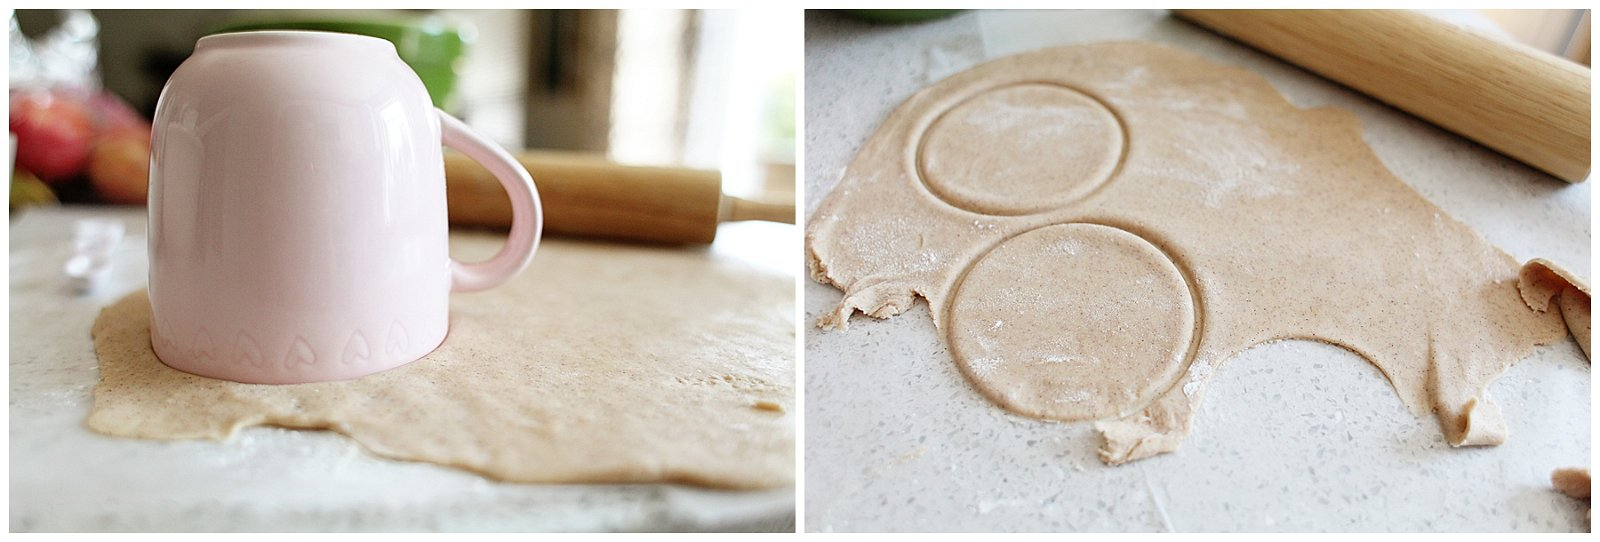 Creating dough for hand pies